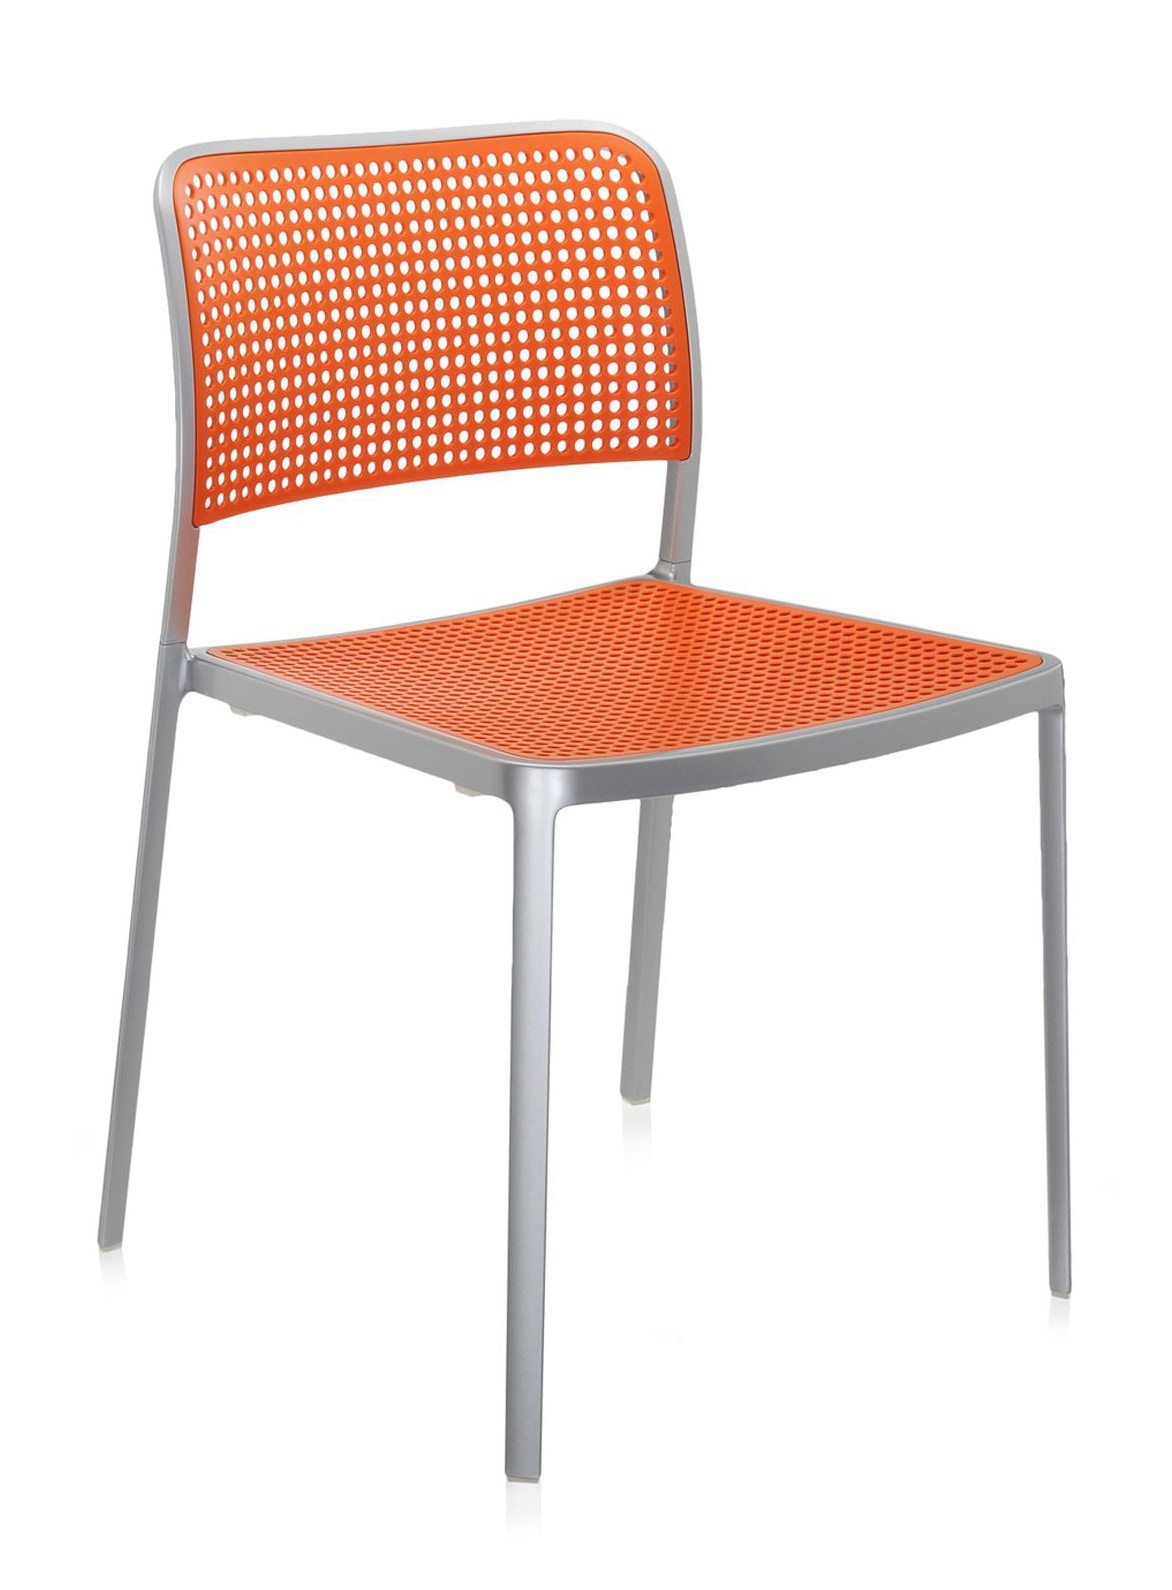 Kartell Audrey Shiny Chair (Priced Each, Sold in Sets of 2)